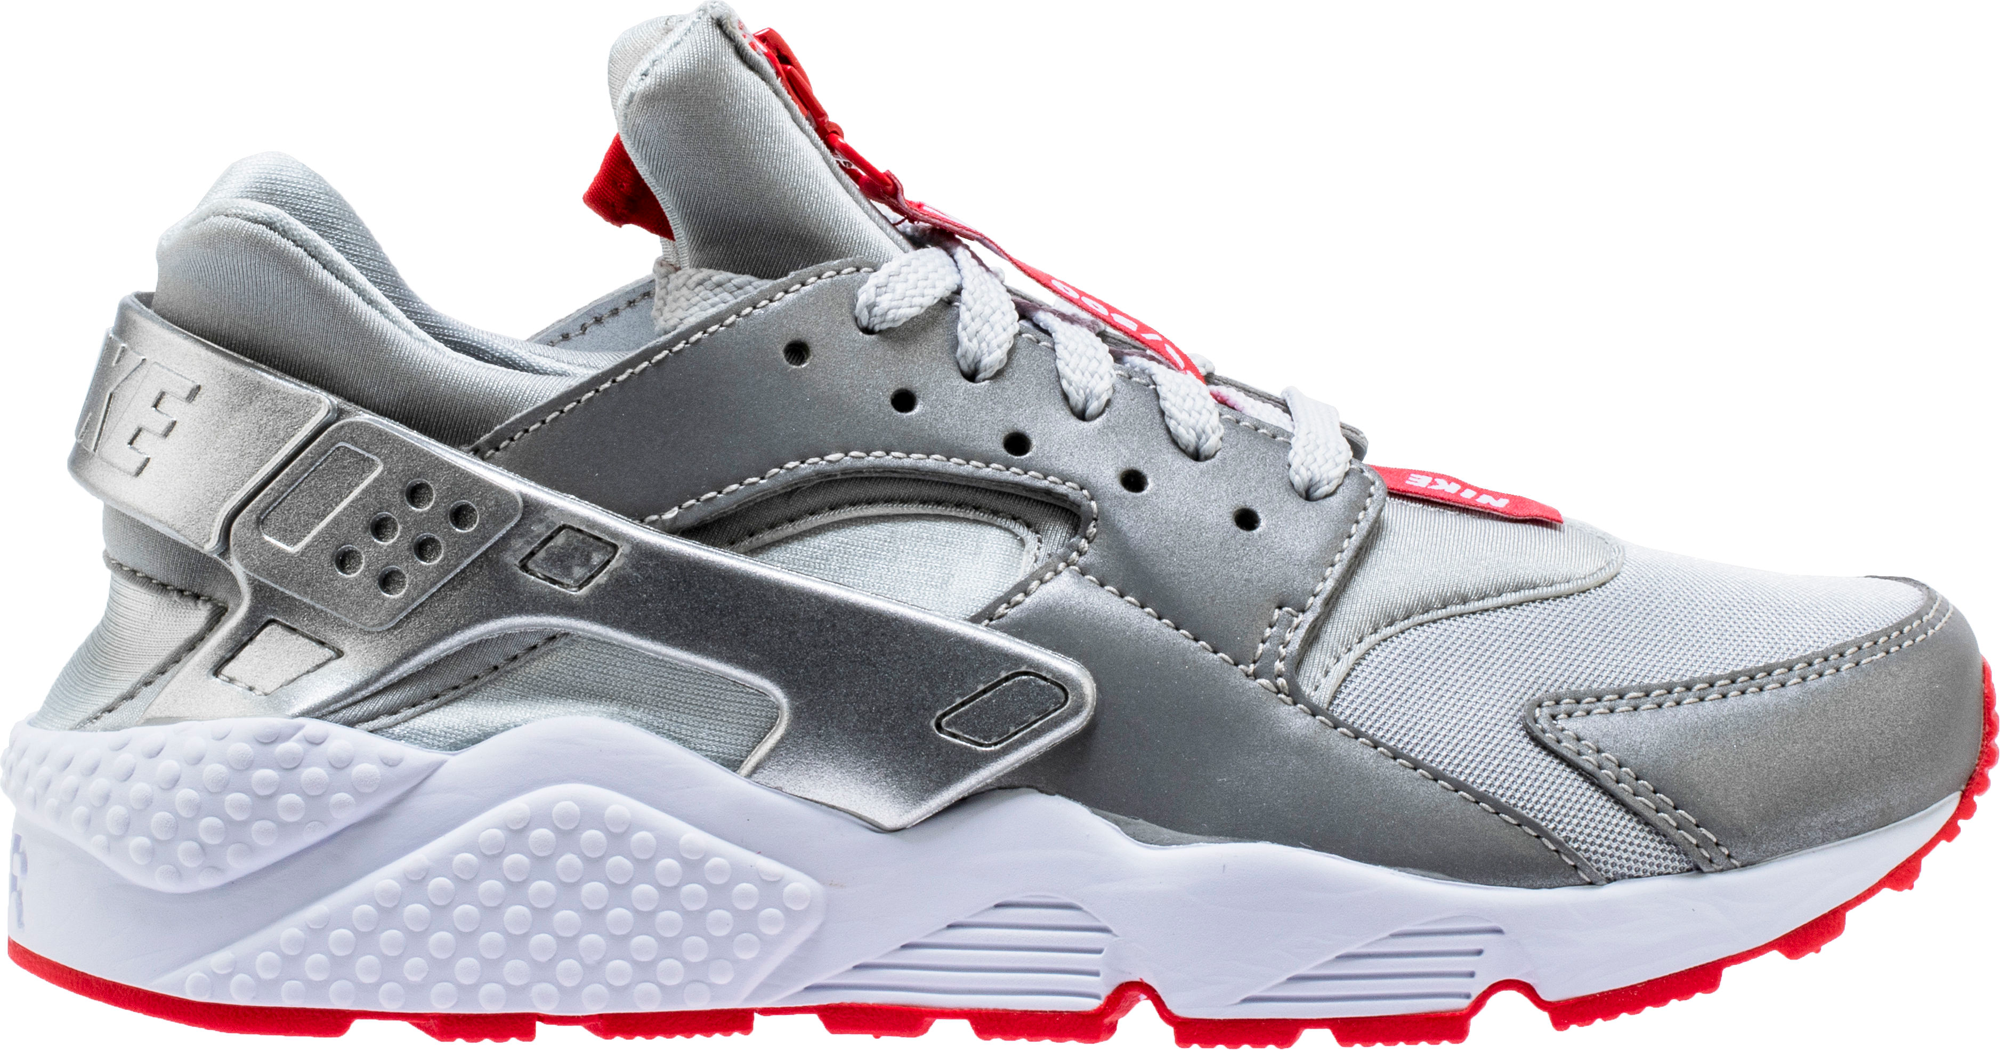 online store 24193 7d9ee Nike Air Huarache Run Zip Shoe Palace